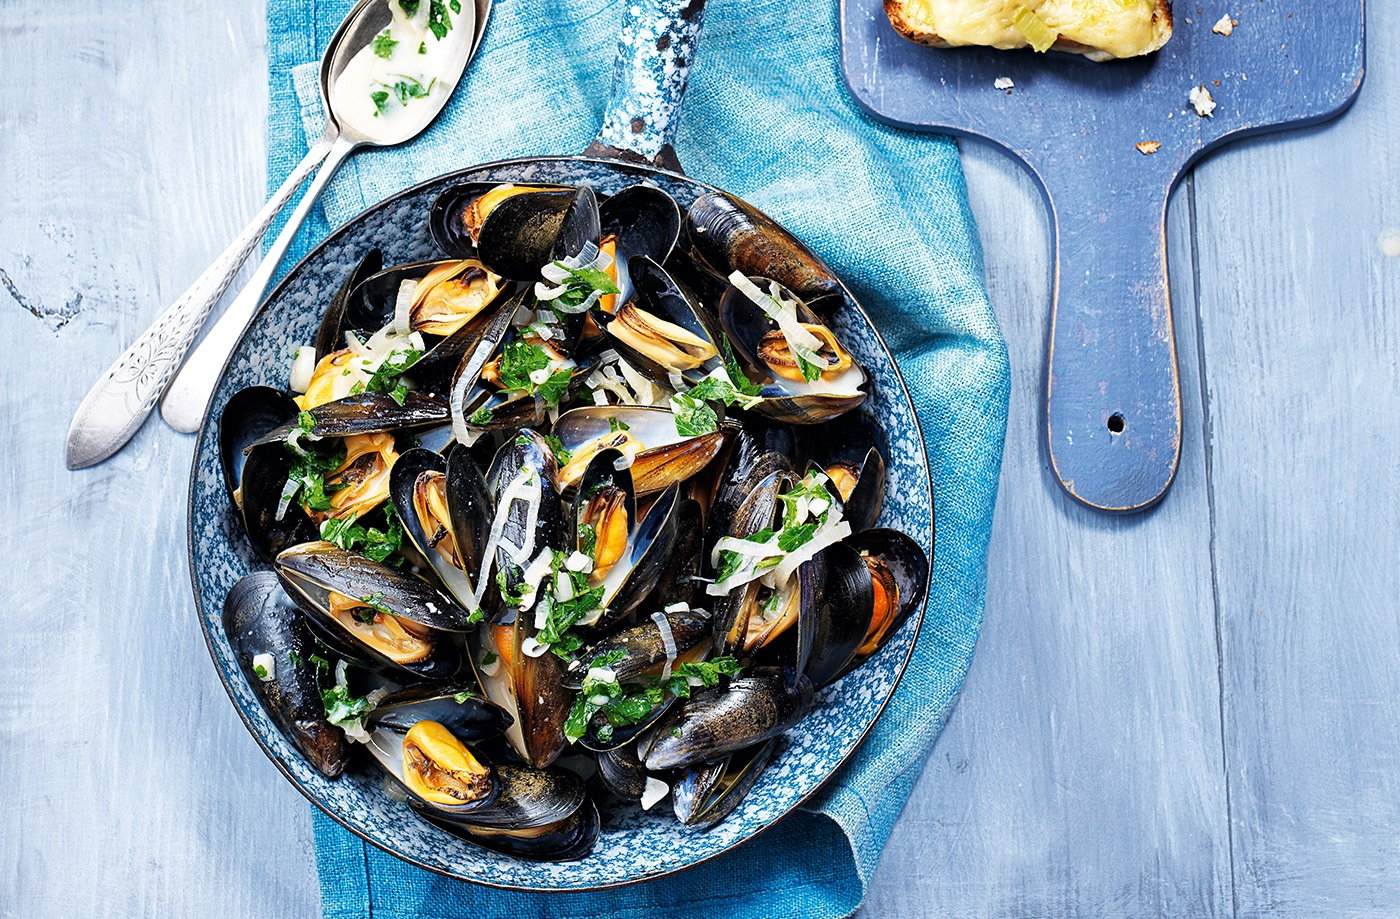 Mussels in beer broth with cheesy rarebits